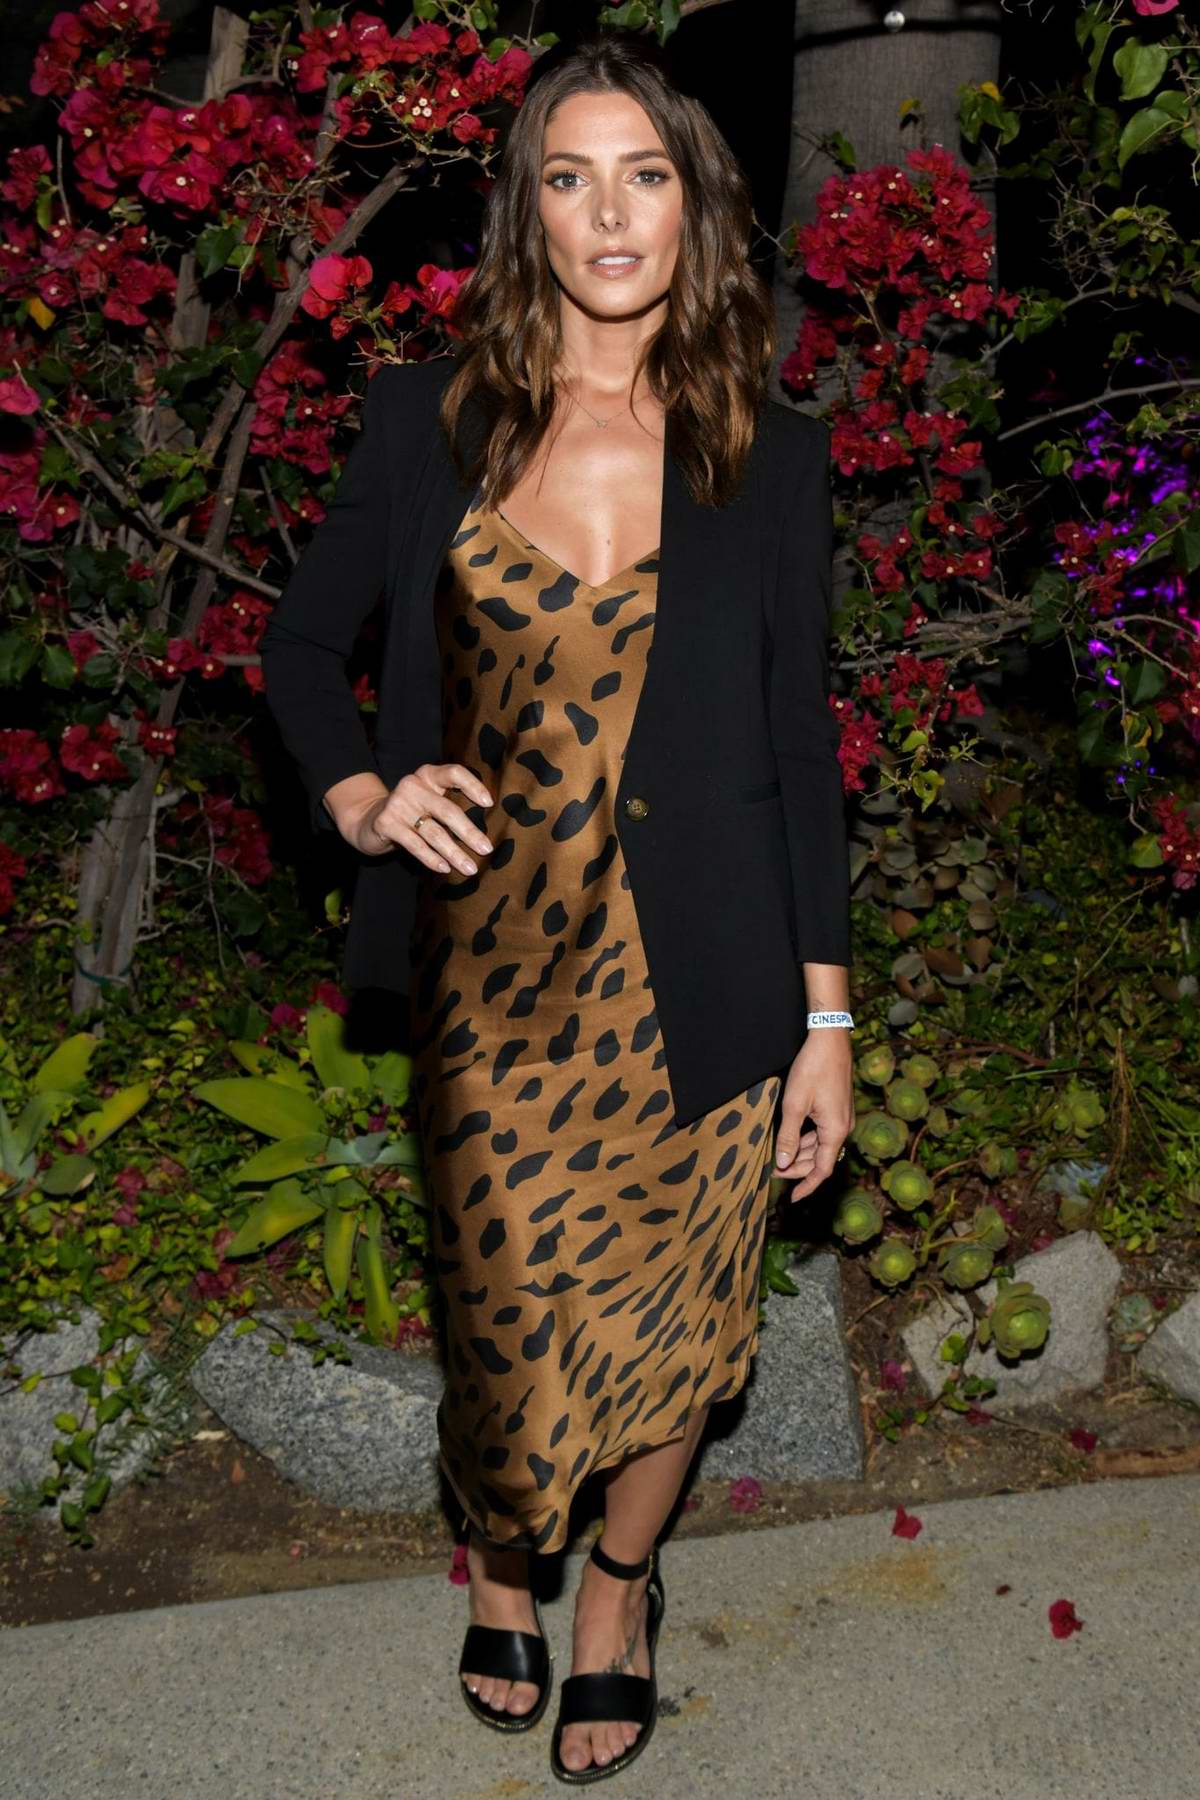 Ashley Greene attends the Cinespia's screening of 'Twilight' at the Hollywood Forever Cemetery in Los Angeles